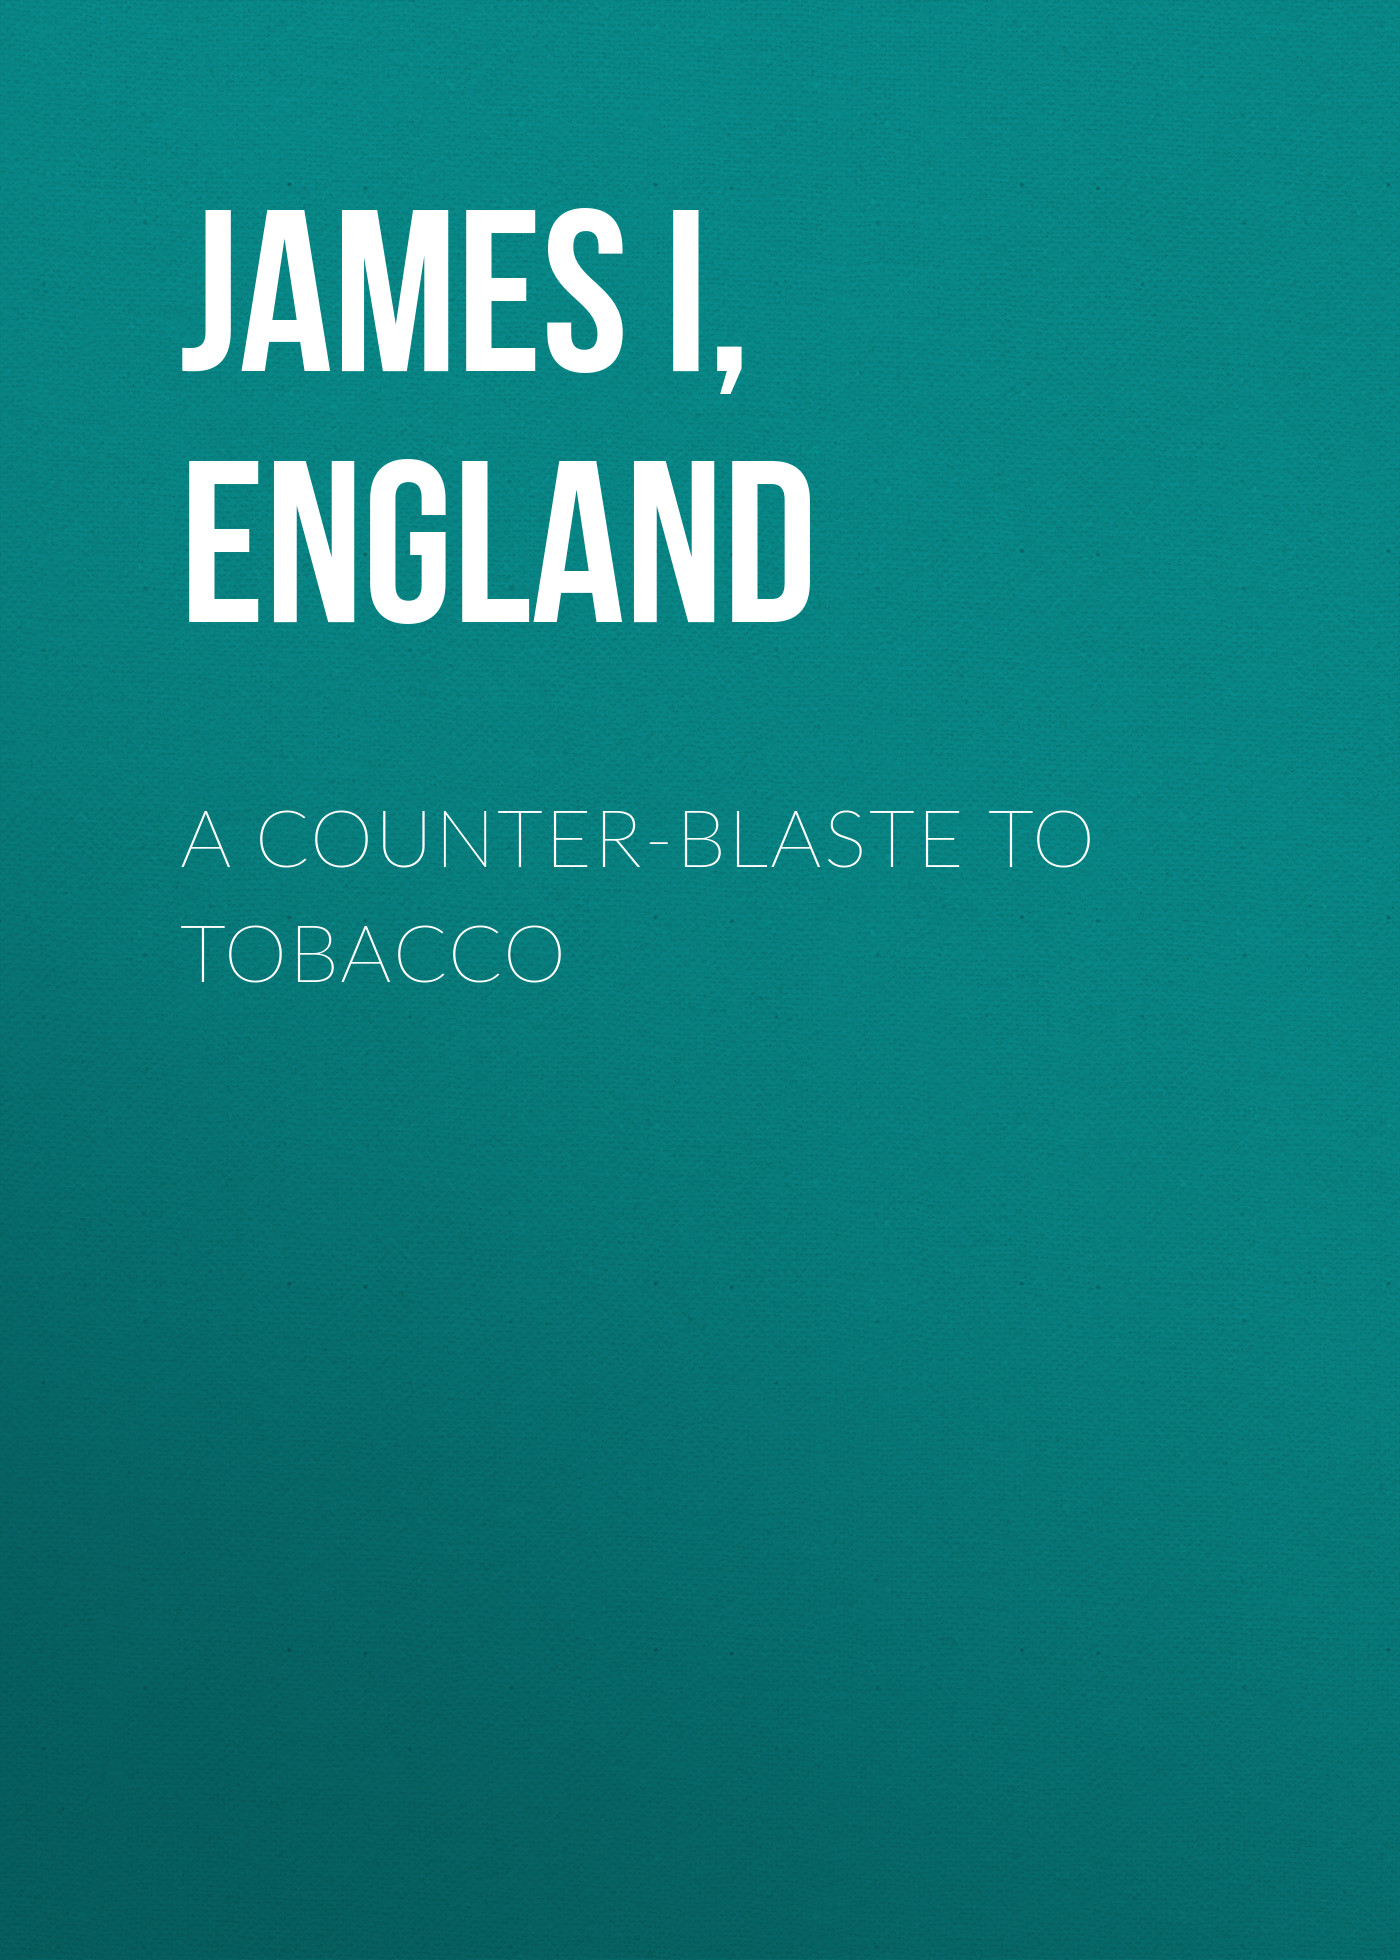 James I, King of England A Counter-Blaste to Tobacco counter ct6s i